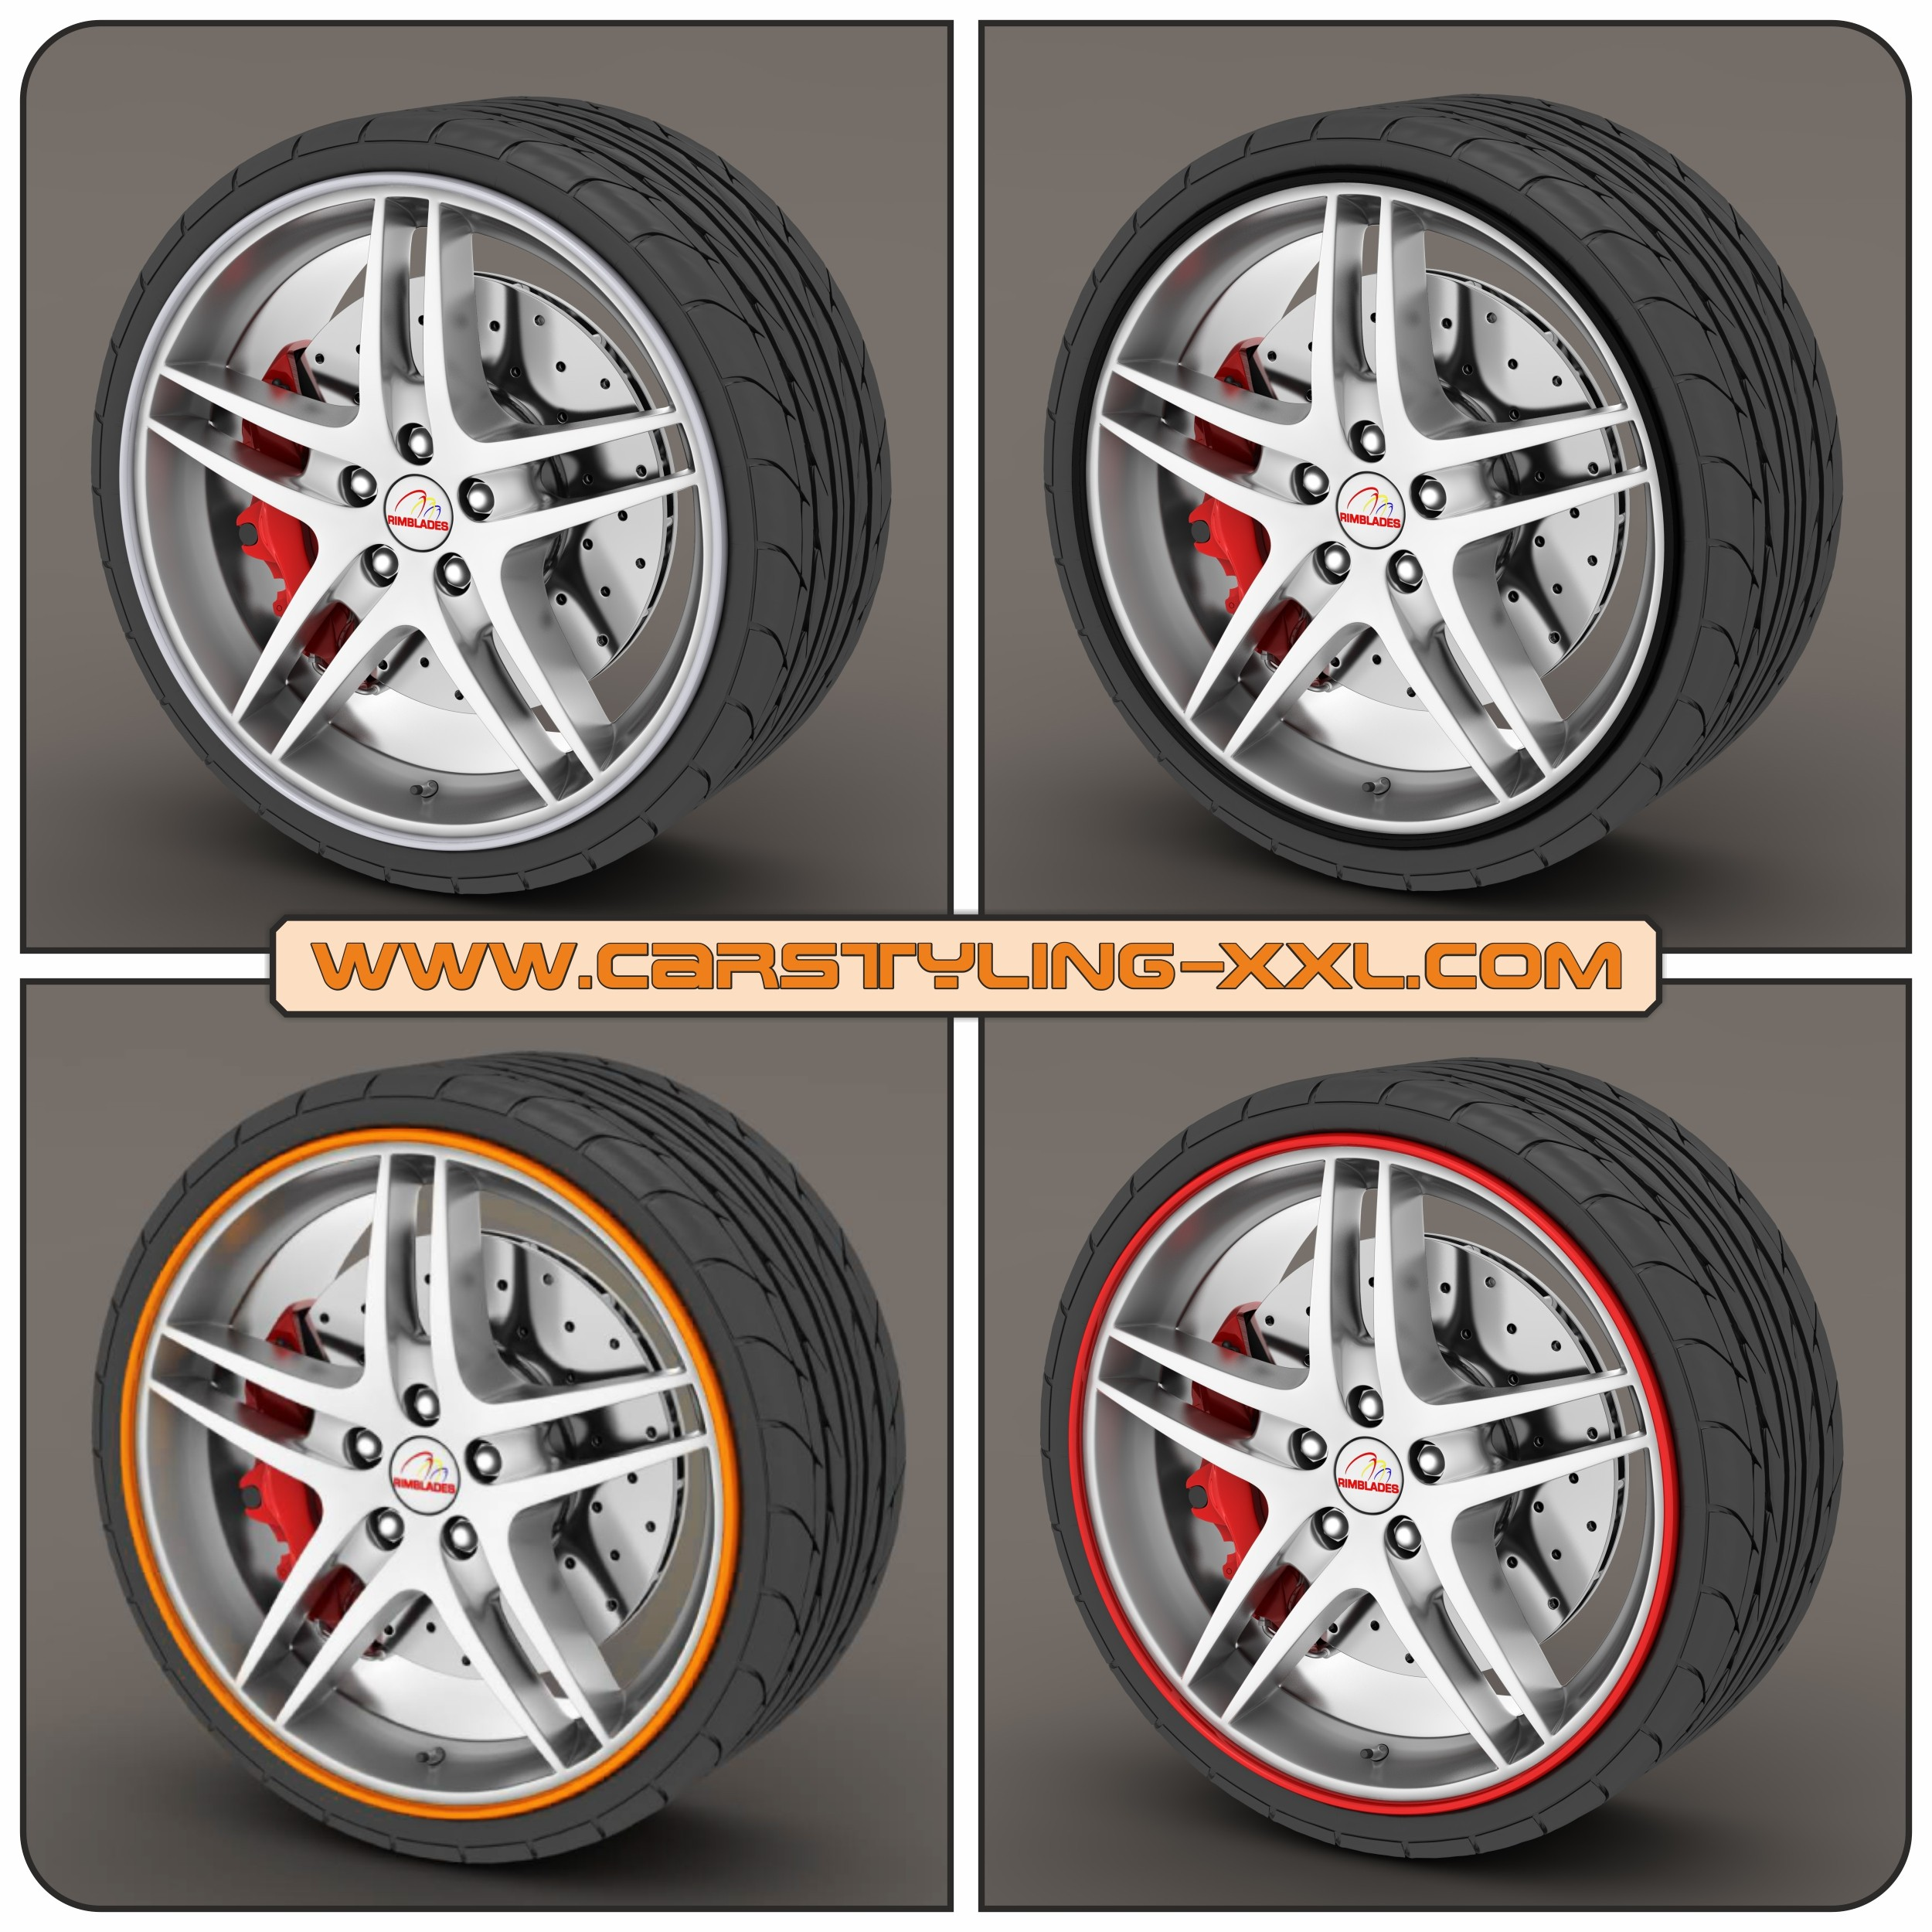 Rimblades with 3M glue - colour: red - Premium rim protection and styling for alloy wheel rims up to 22'' – Bild 3